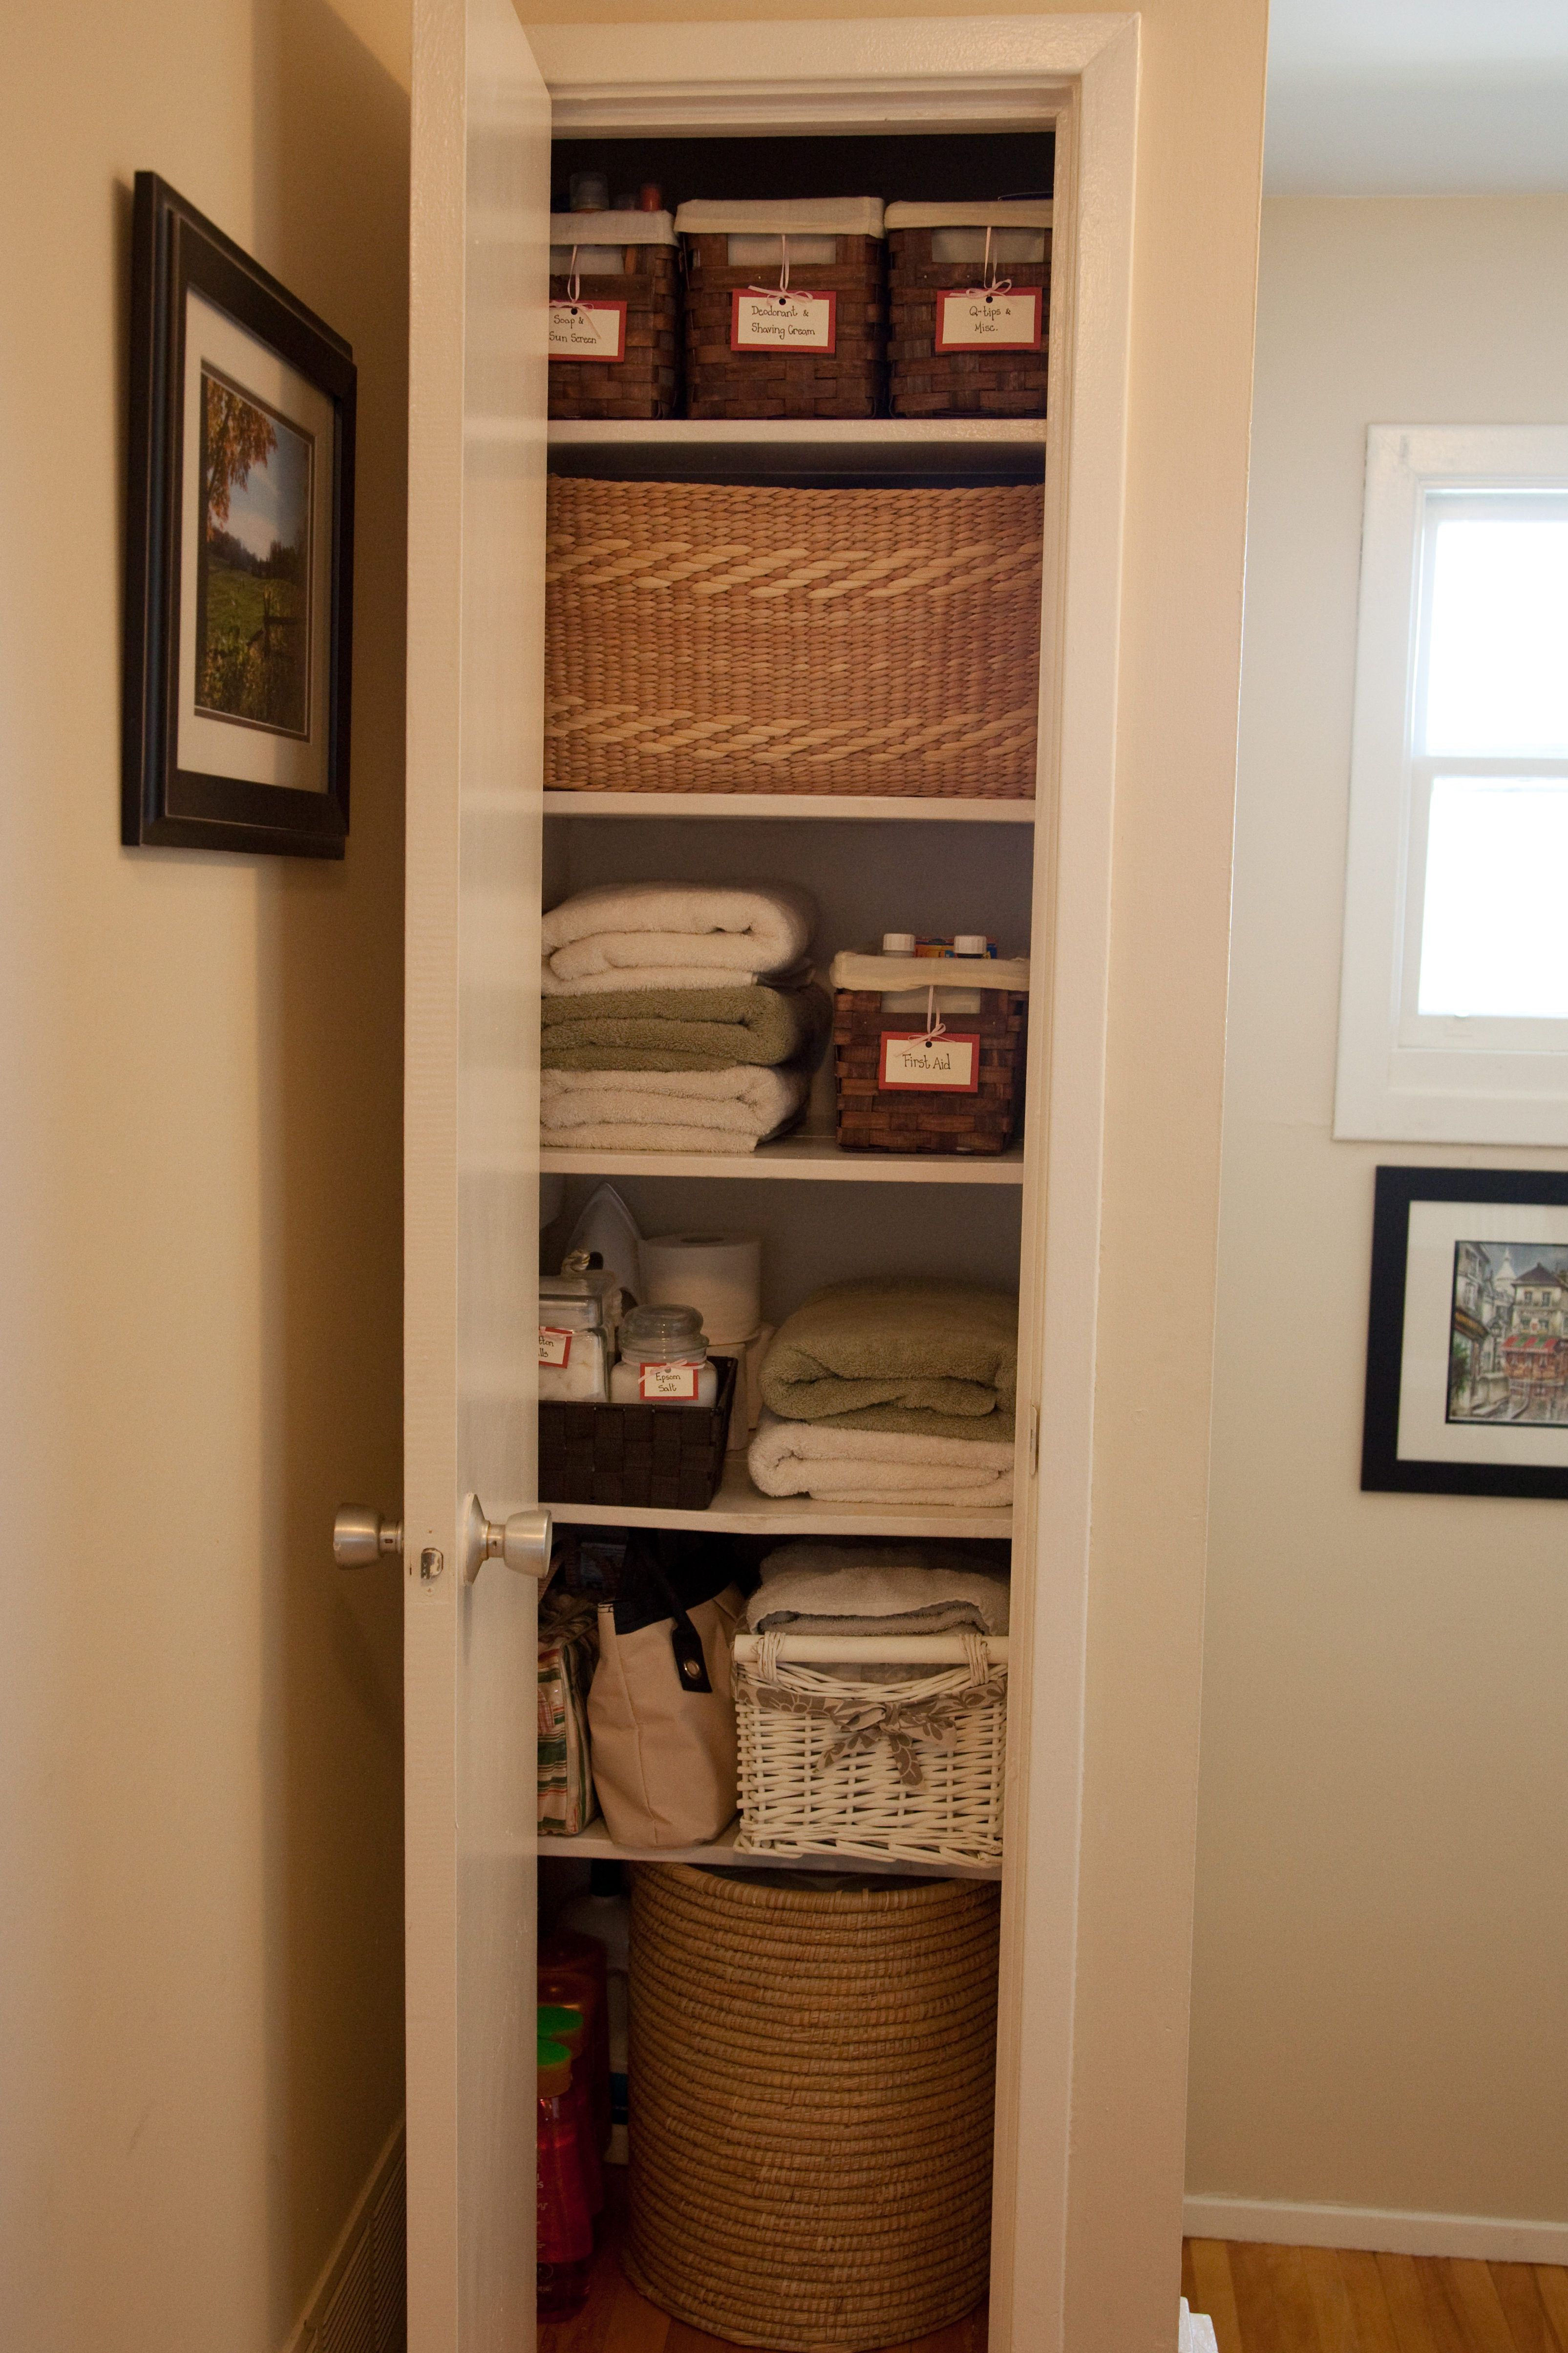 Master Bathroom Organizing Ideas: Organize Your Linen Closet!